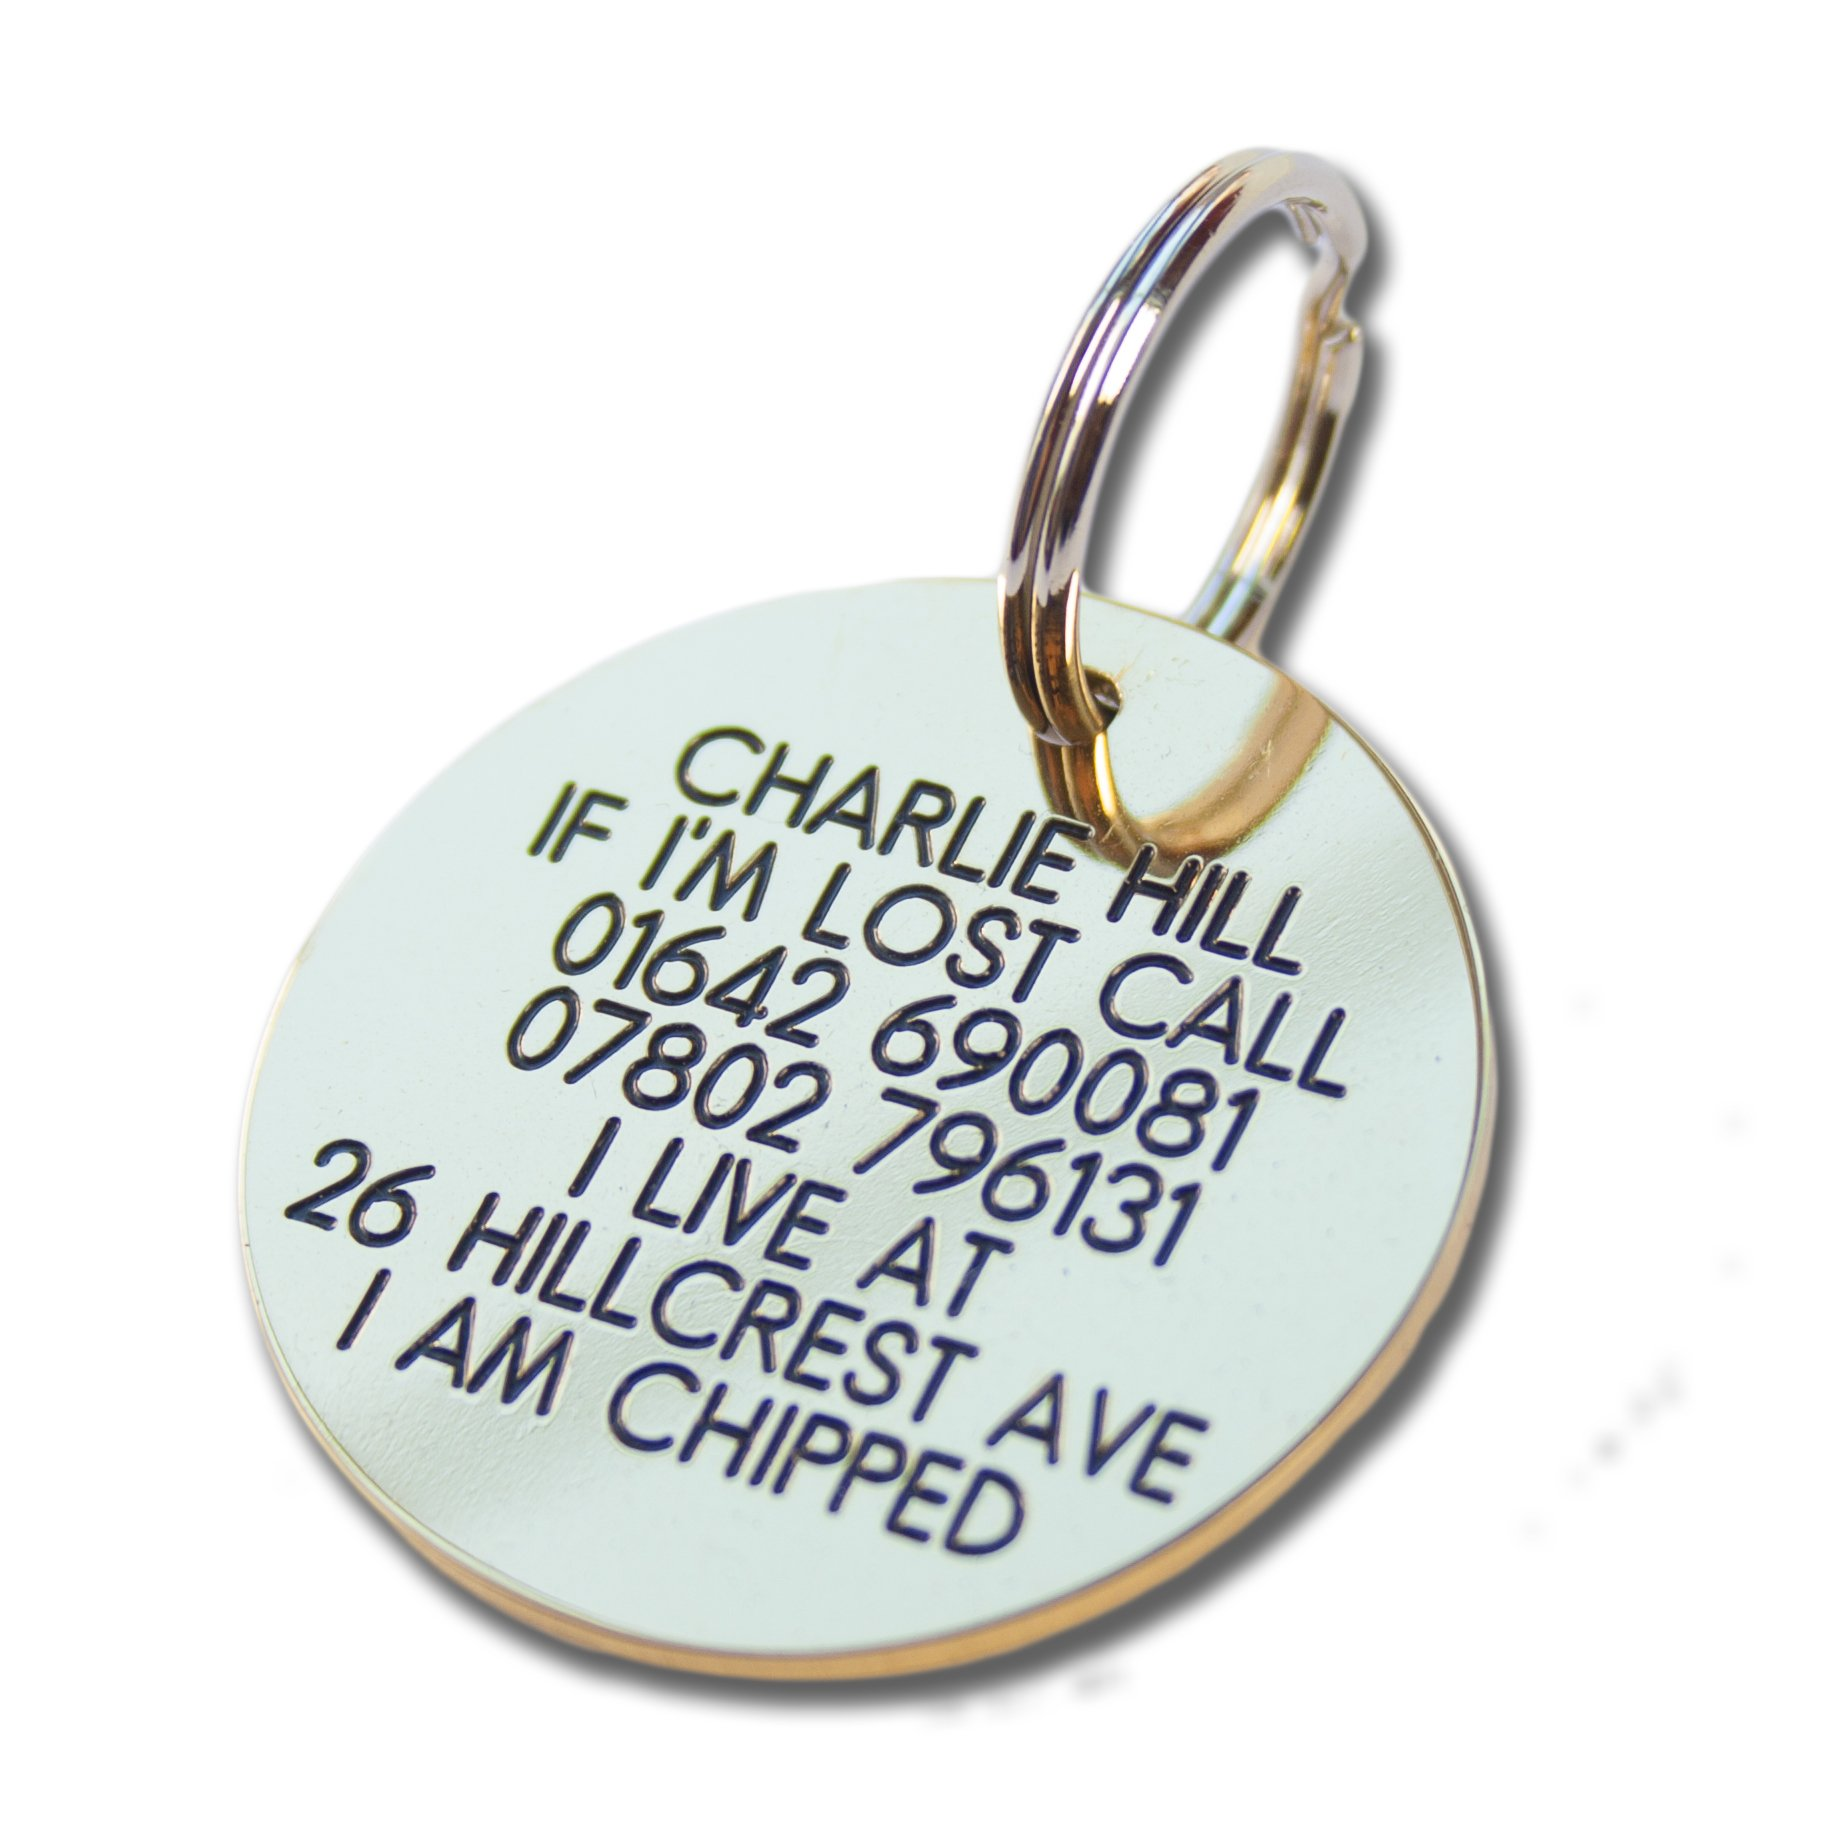 Deeply engraved solid brass 39mm circular dog tag